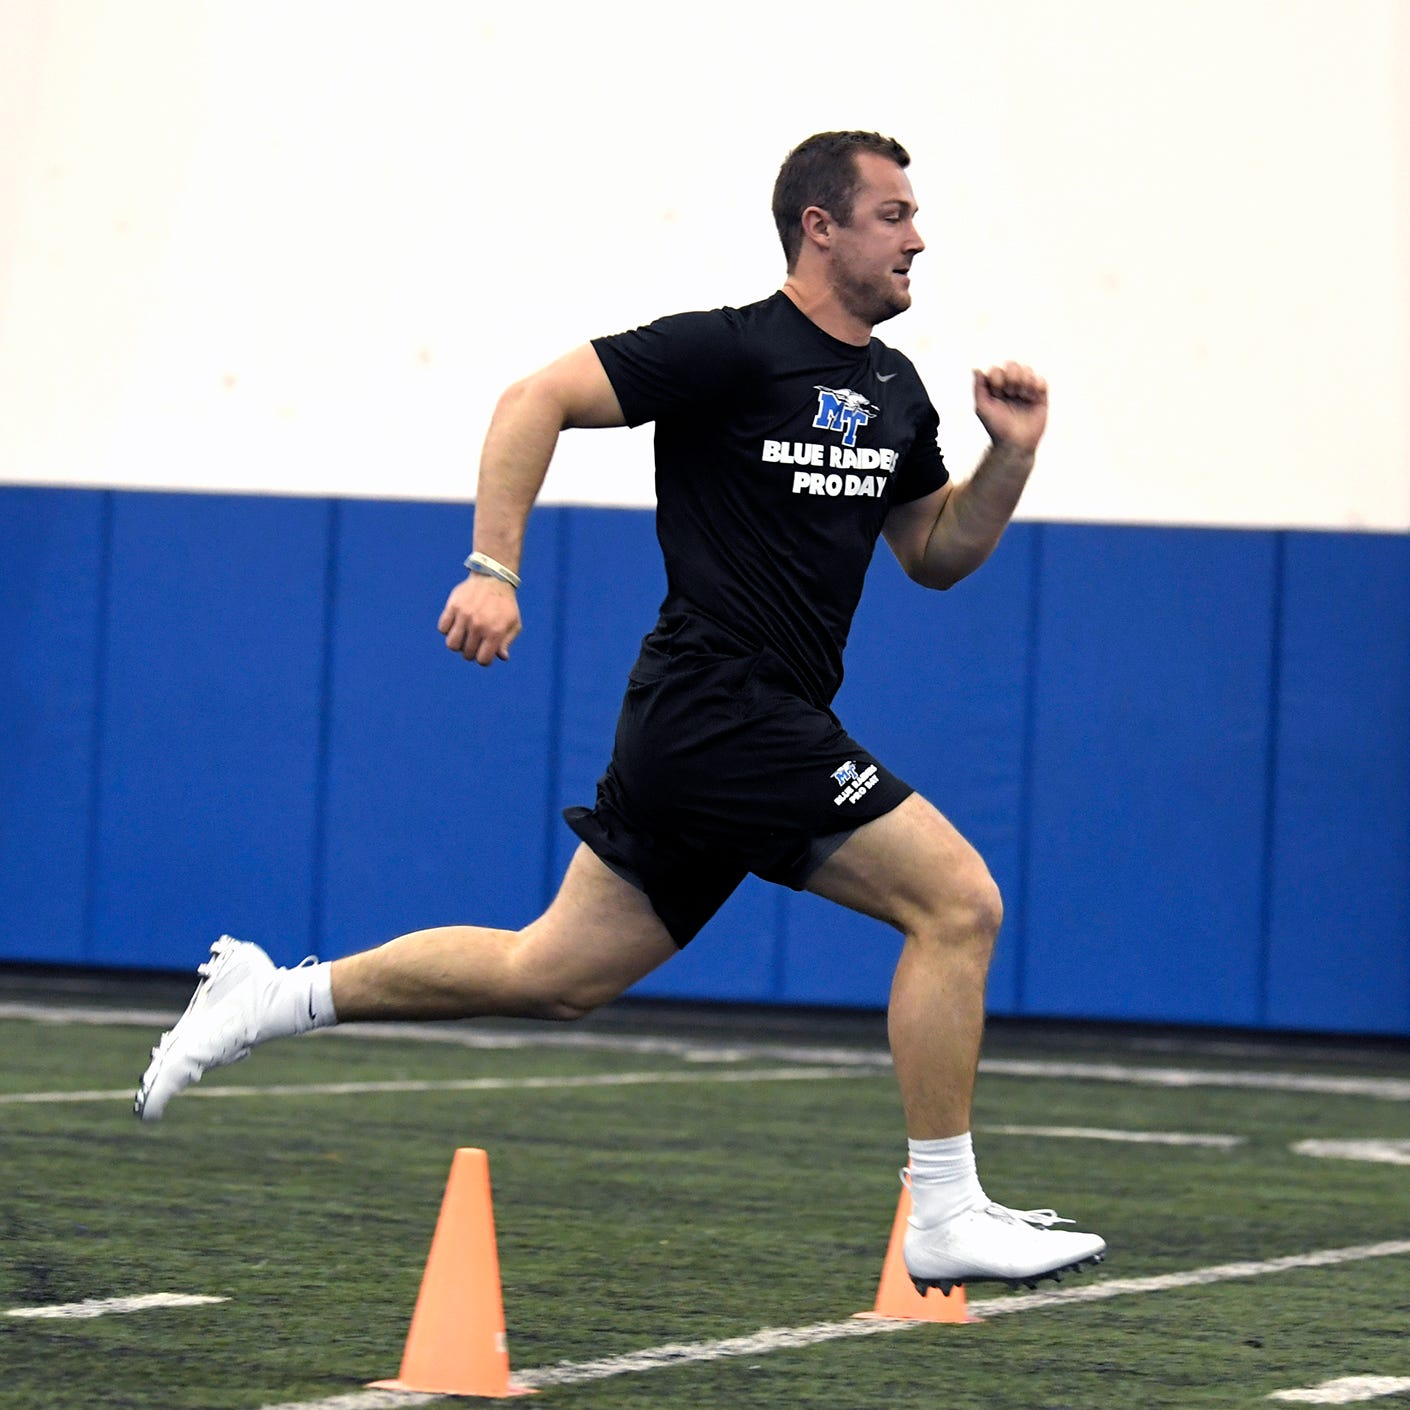 MTSU quarterback Brent Stockstill pulls hamstring at Pro Day